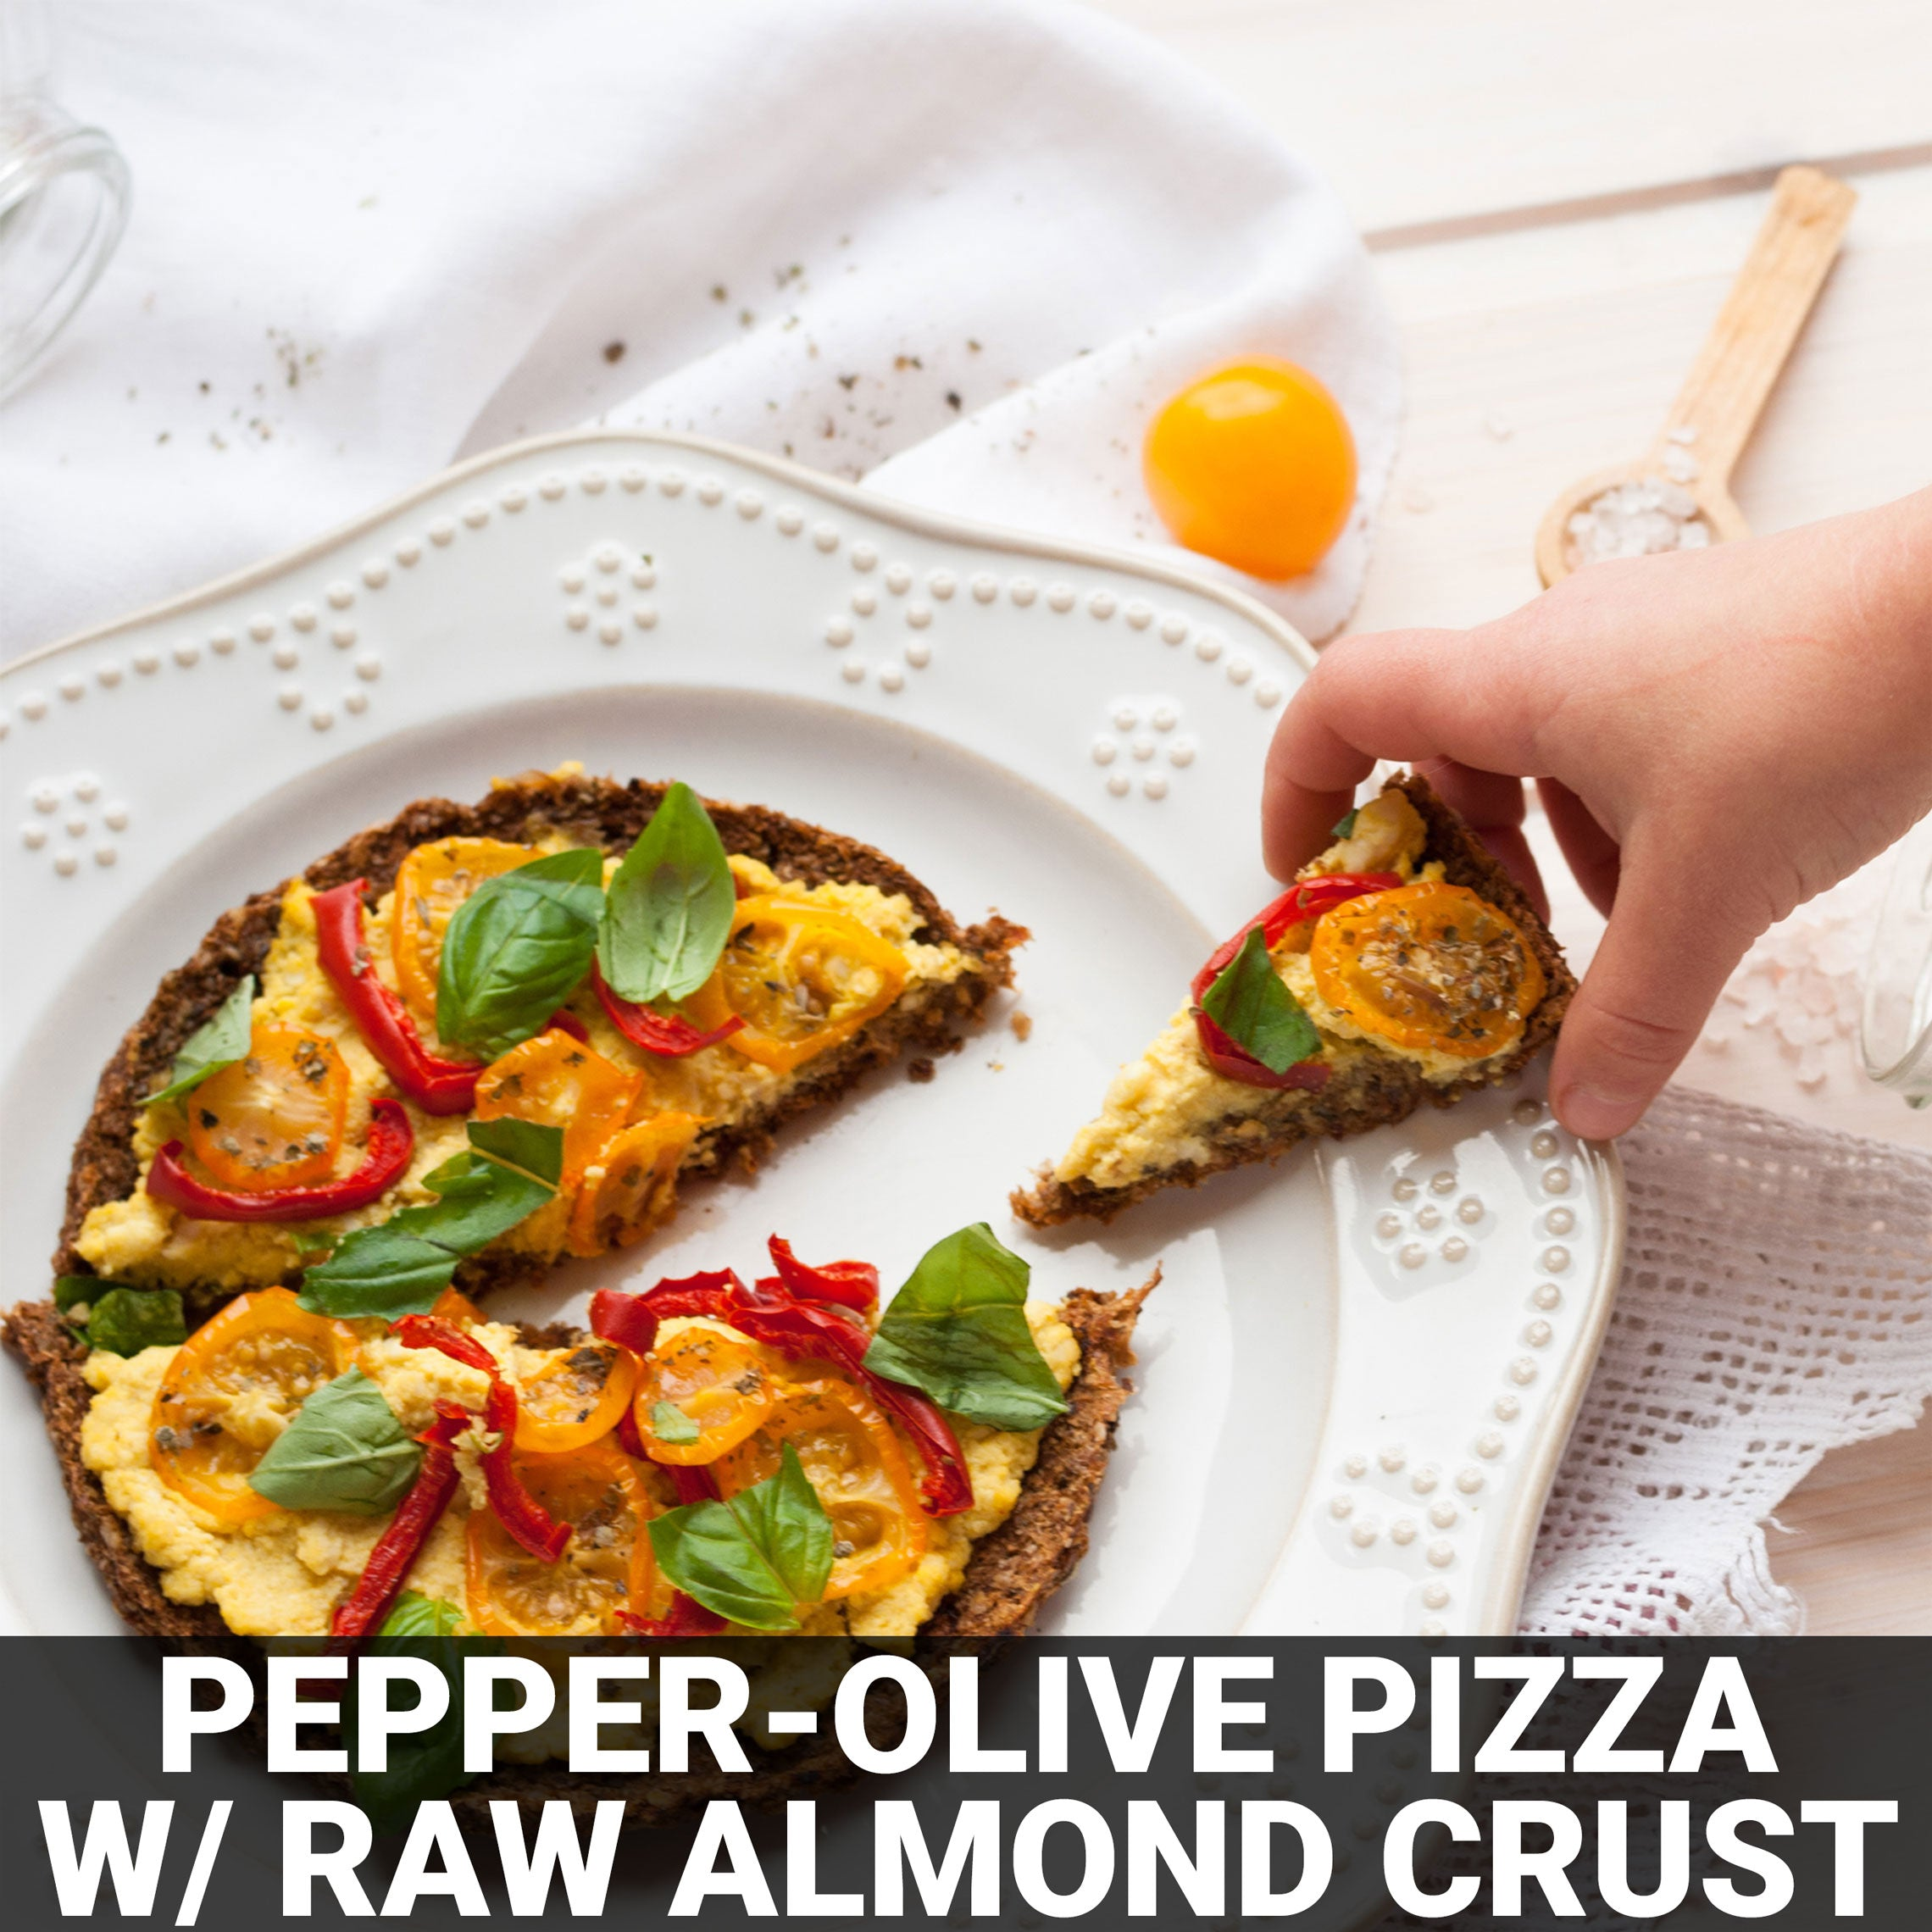 Pepper-Olive Pizza with Raw Almond Crust Recipe - Foods Alive